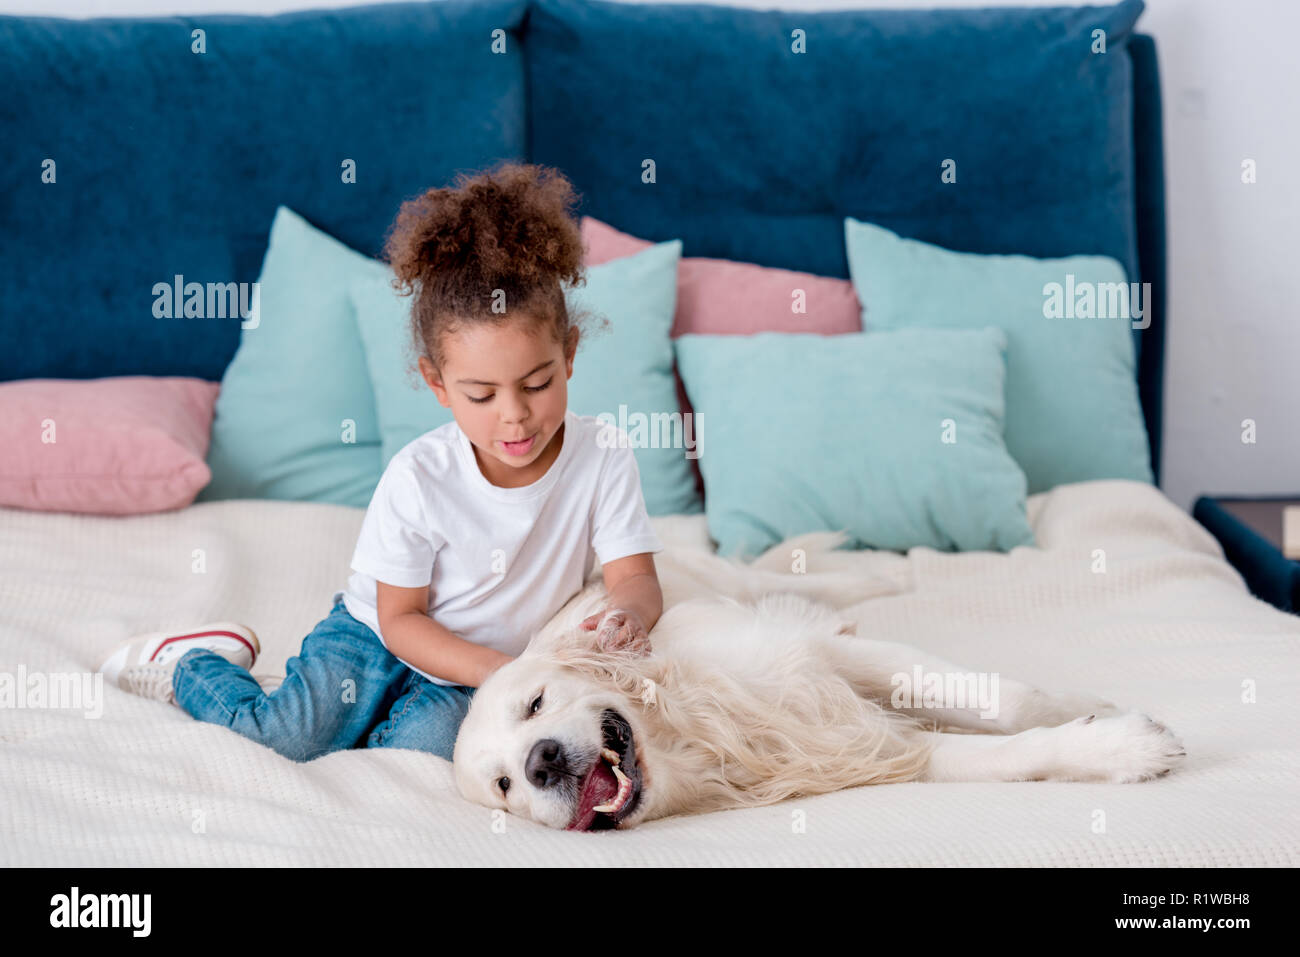 Adorable little african american kid petting happy dog while sitting on bed - Stock Image